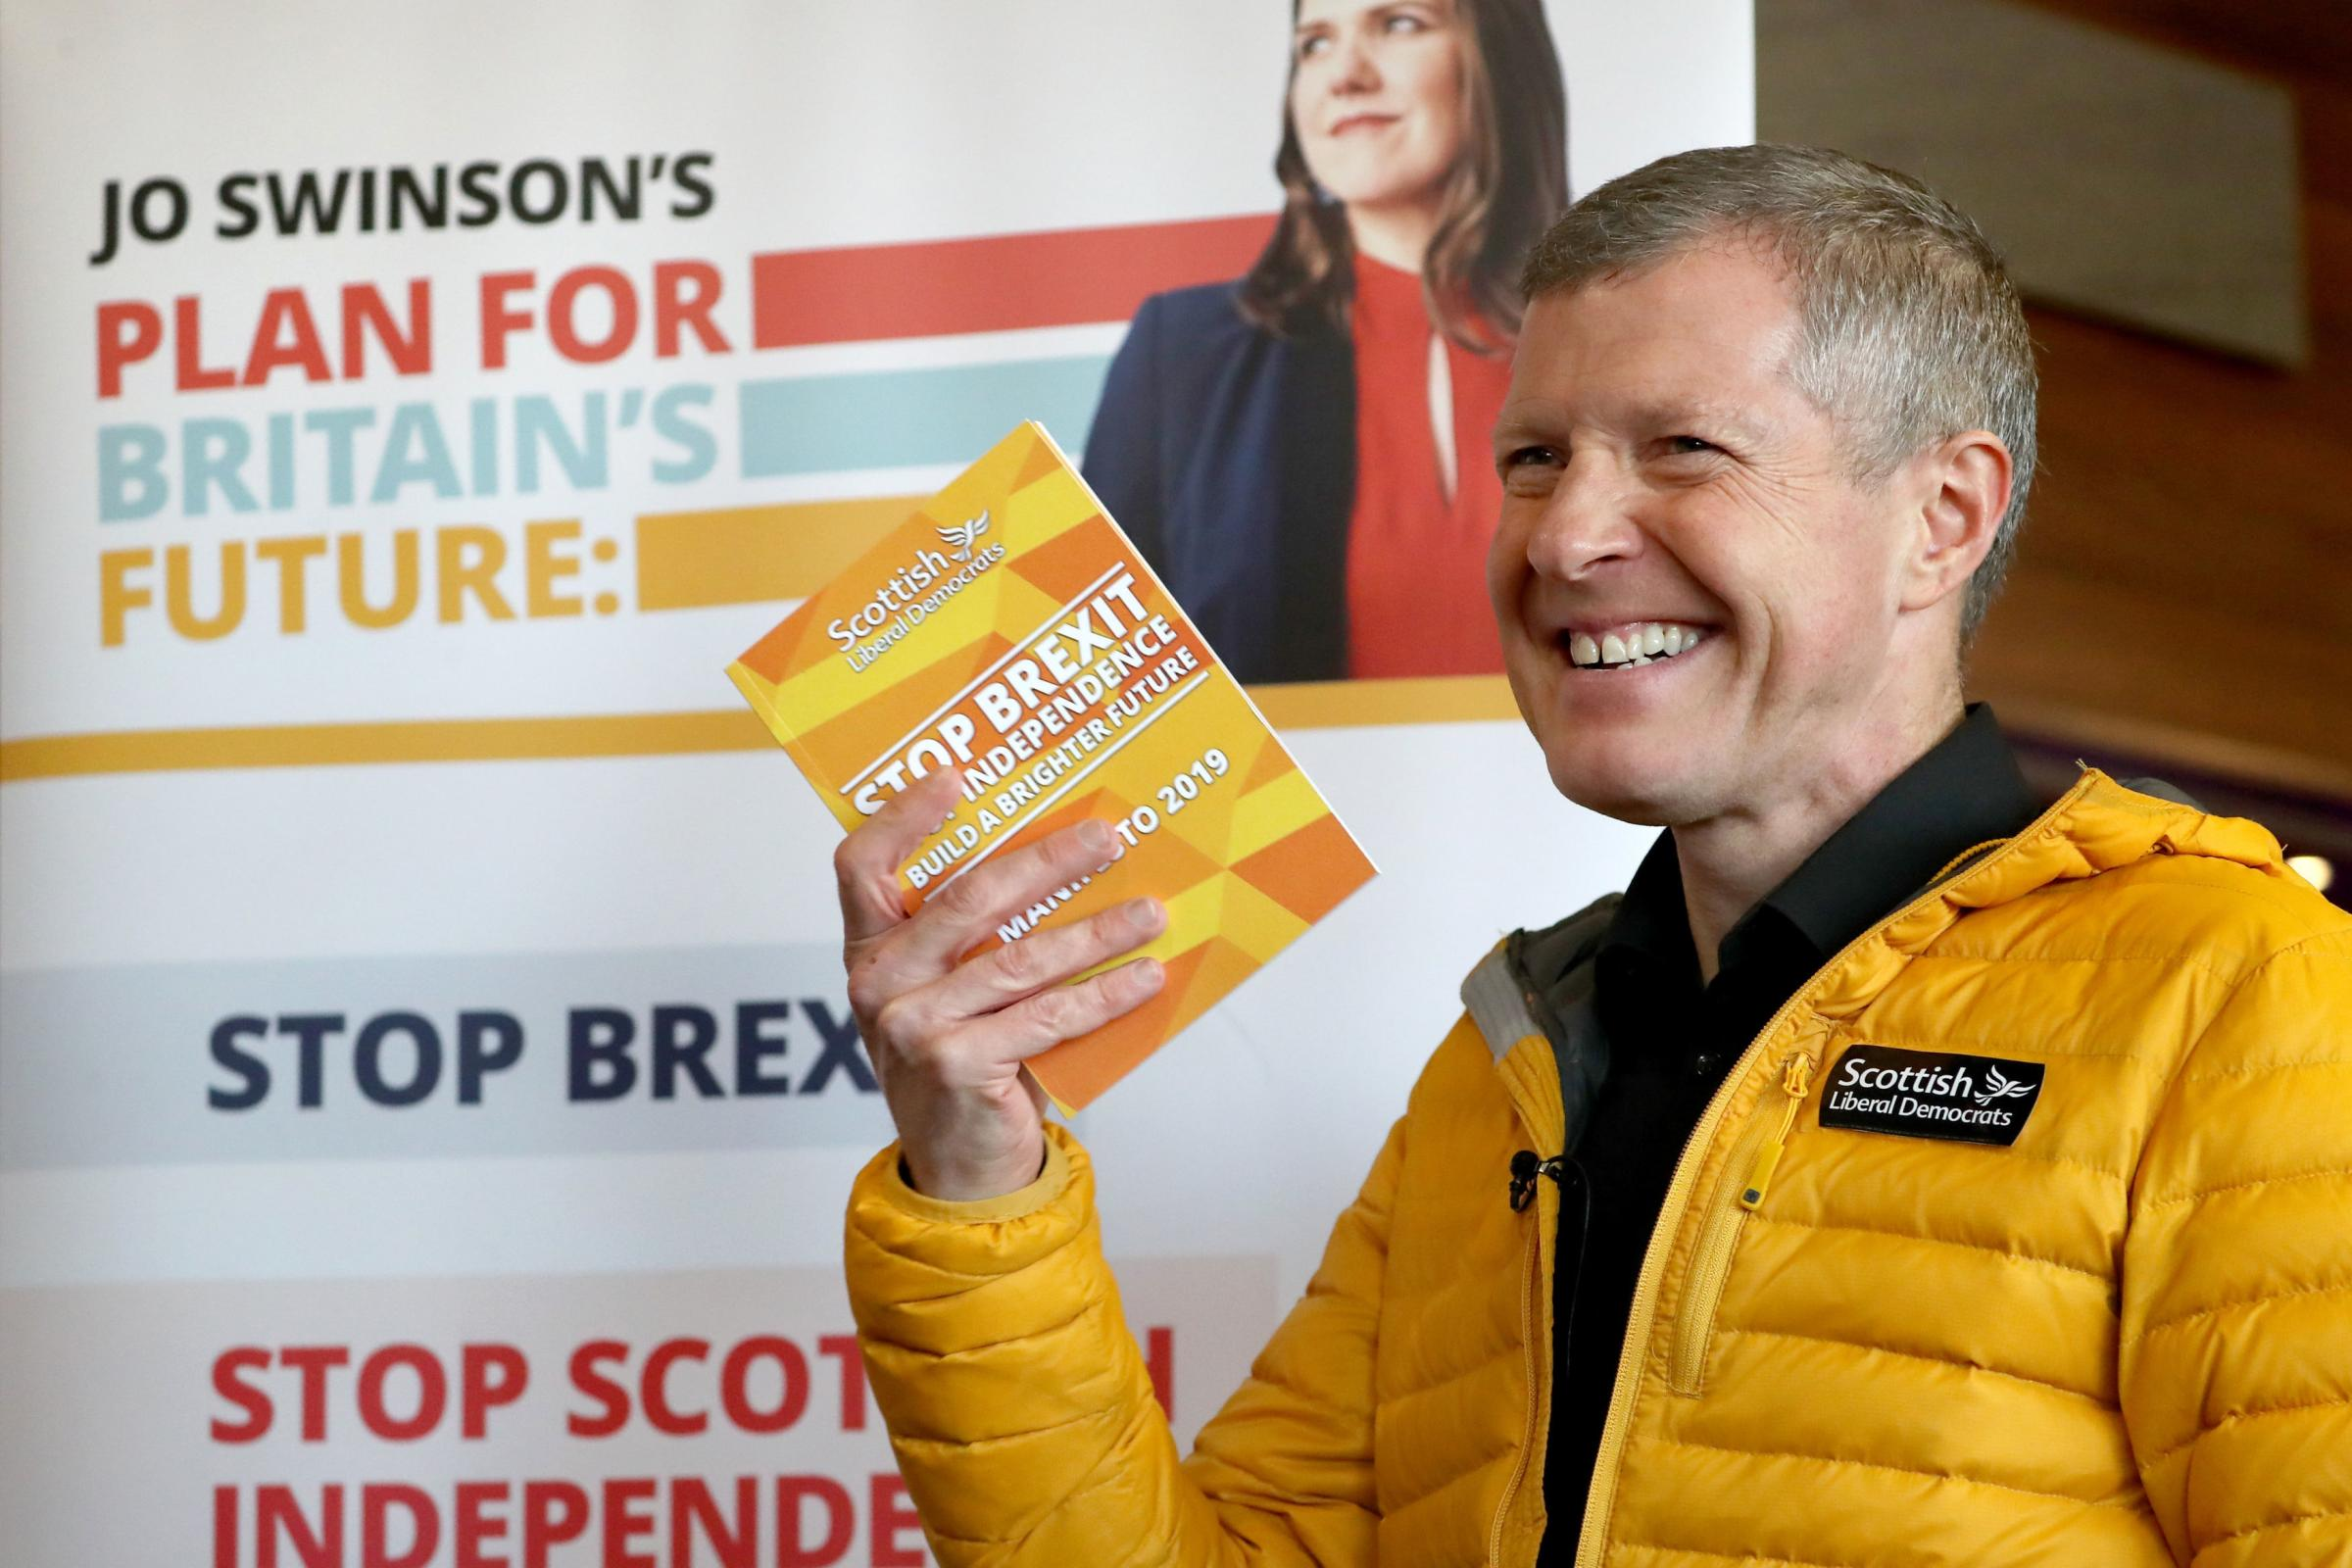 Willie Rennie regrets Lib Dem plan to revoke Article 50 without vote